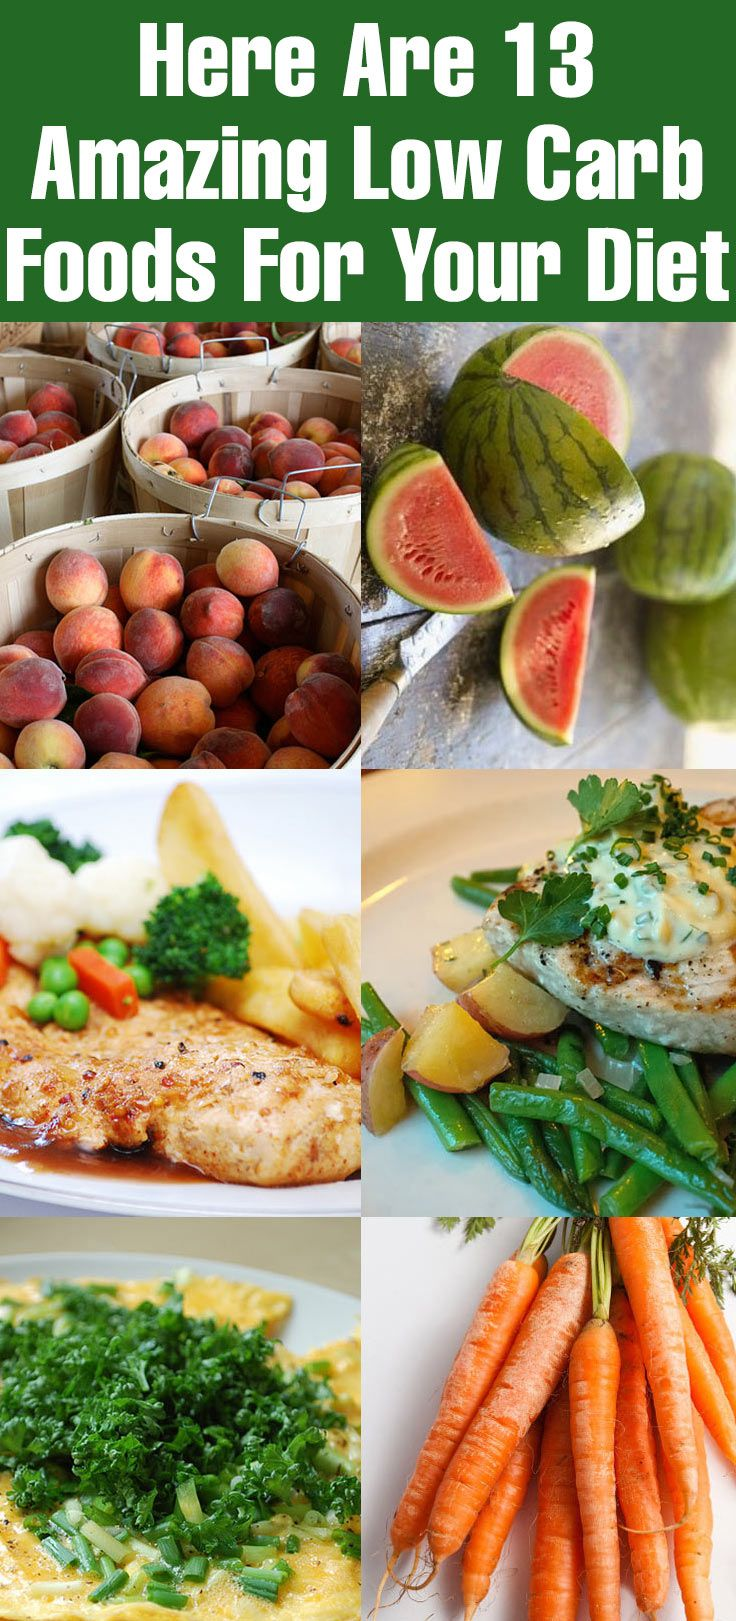 Low Carb Diet What To Eat, Advantages And Disadvantages